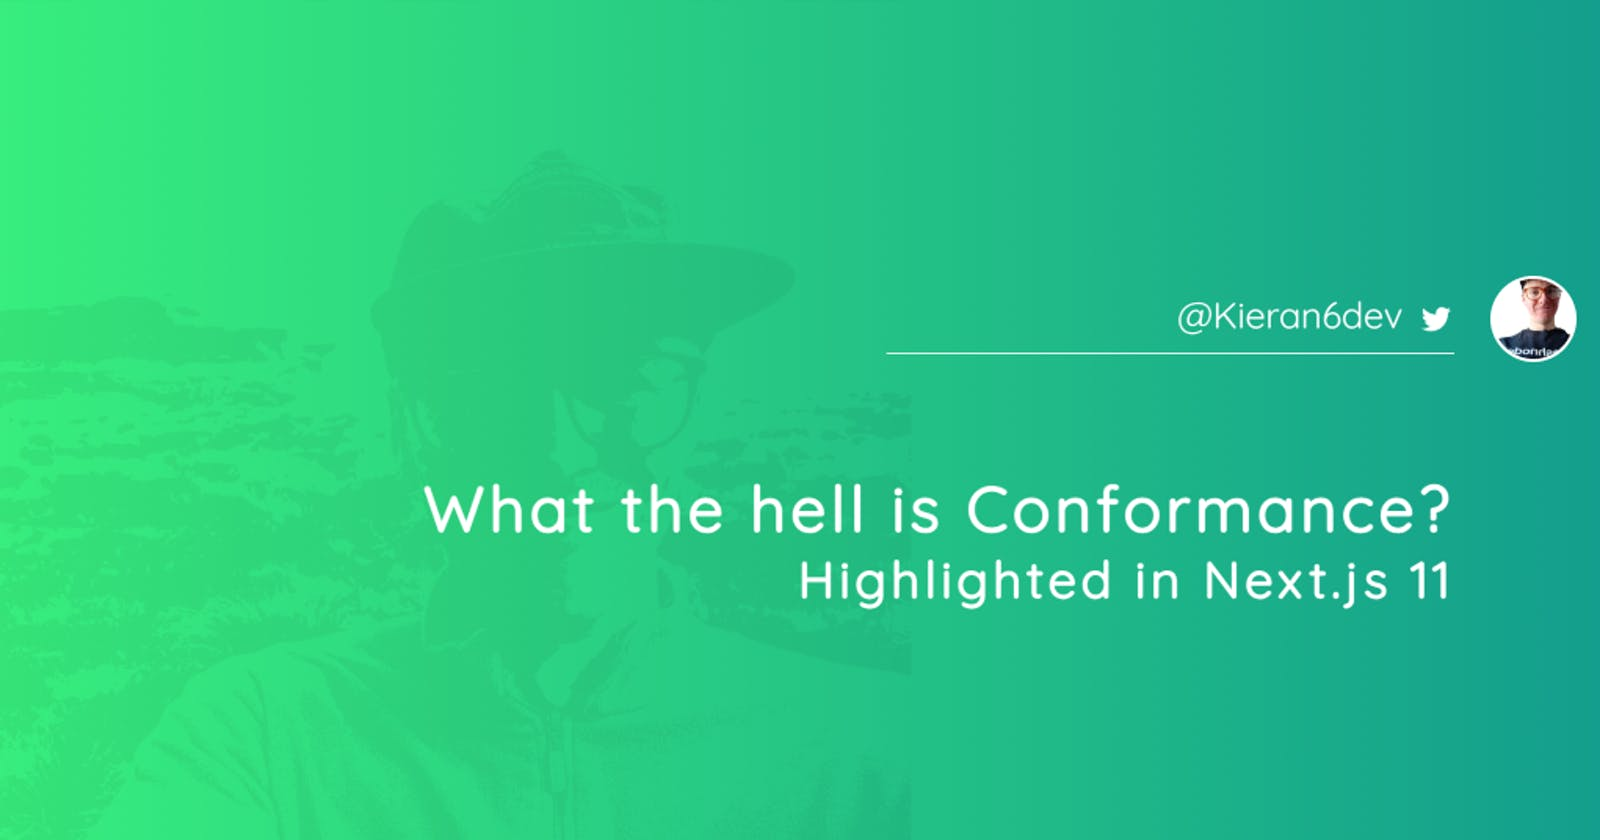 What the hell is Conformance? Highlighted in Next.js 11